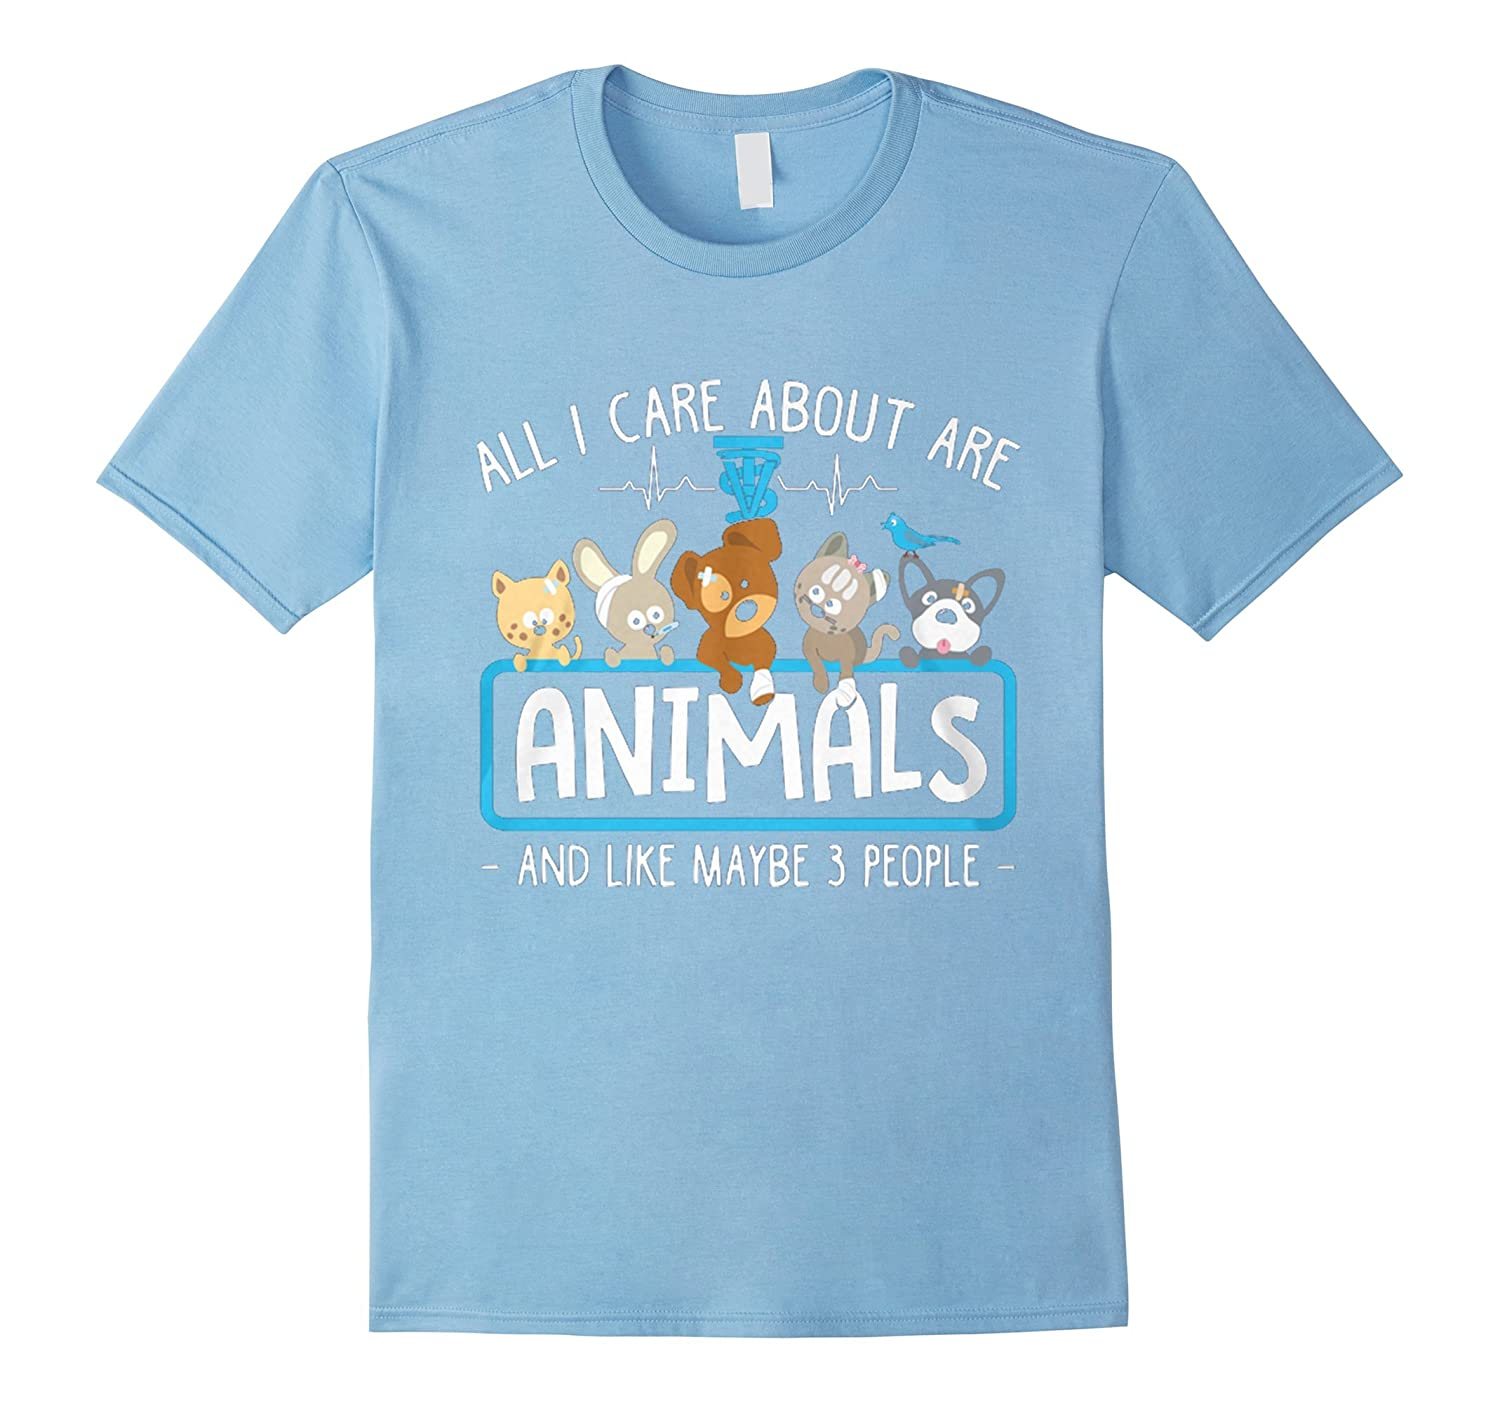 All I care about are animals and maybe like 3 people shirt-TH